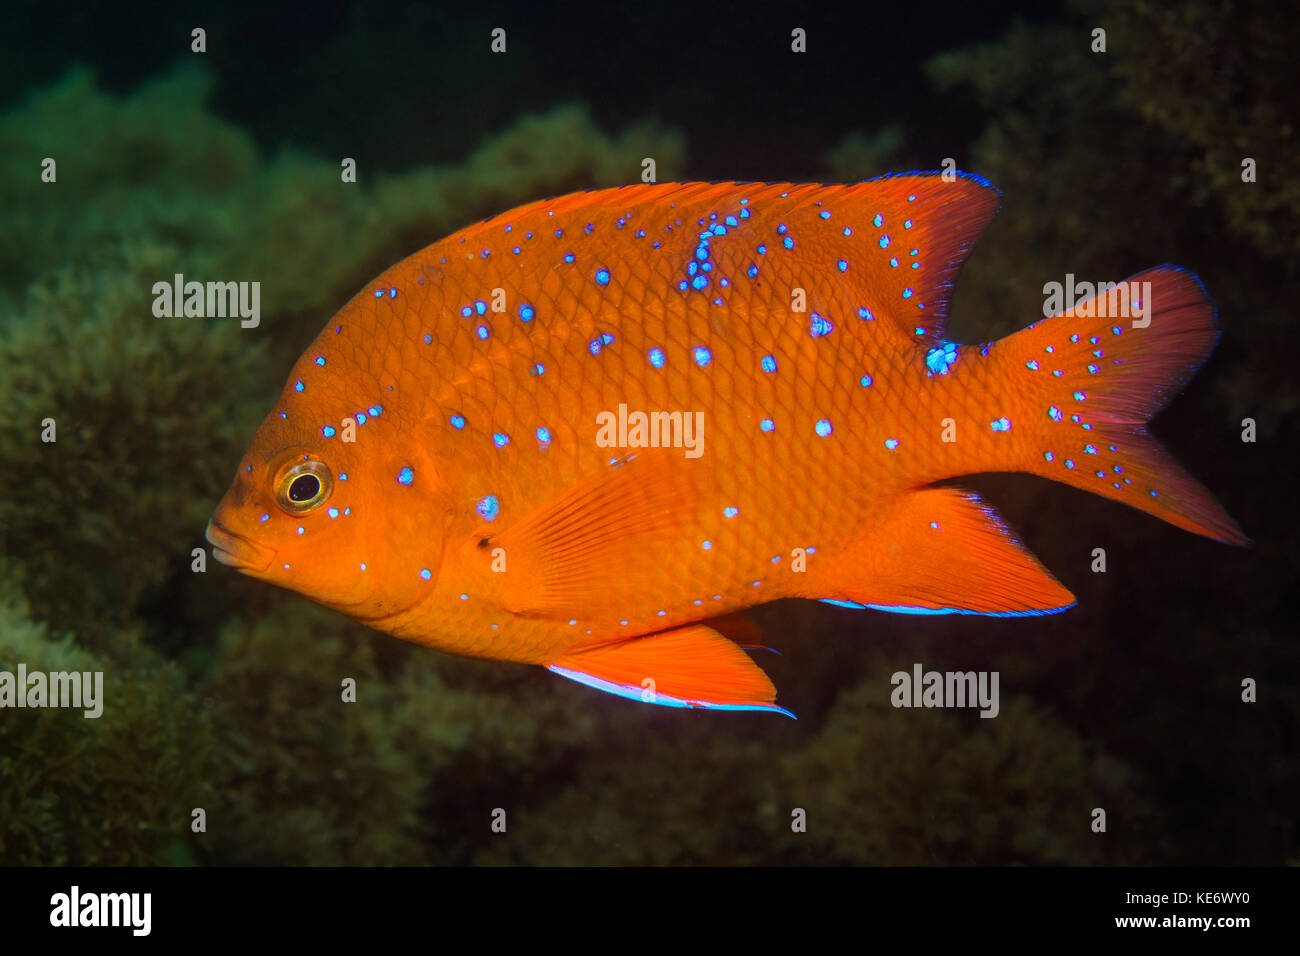 Garibaldi, poisson juvénile hypsypops rubicundus, catalina island, Californie, USA Photo Stock